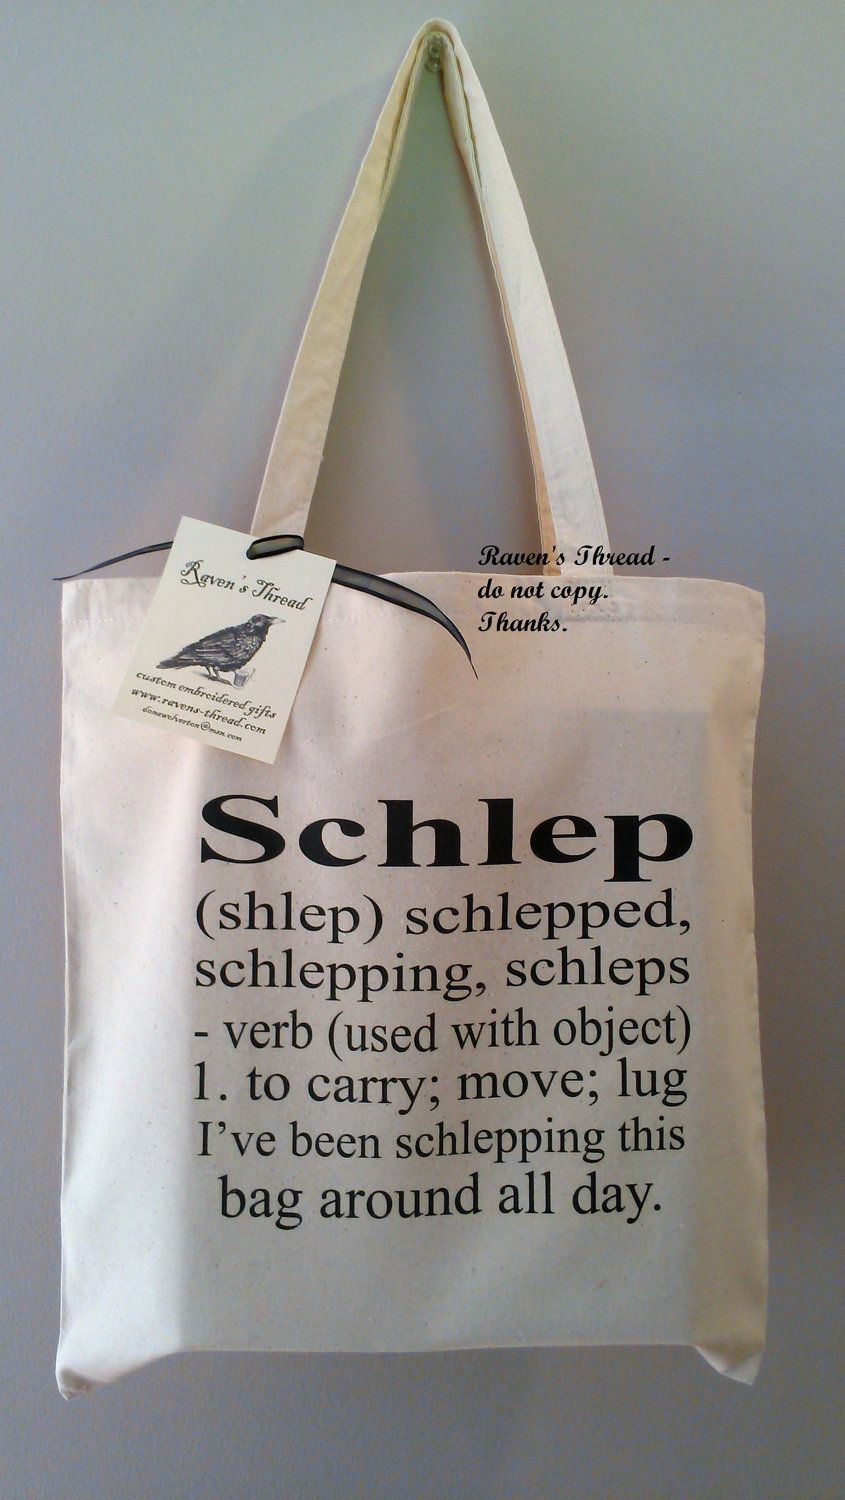 Haha Schlep Definition Passover Tote Bag Via Etsy Funny Ha Ha